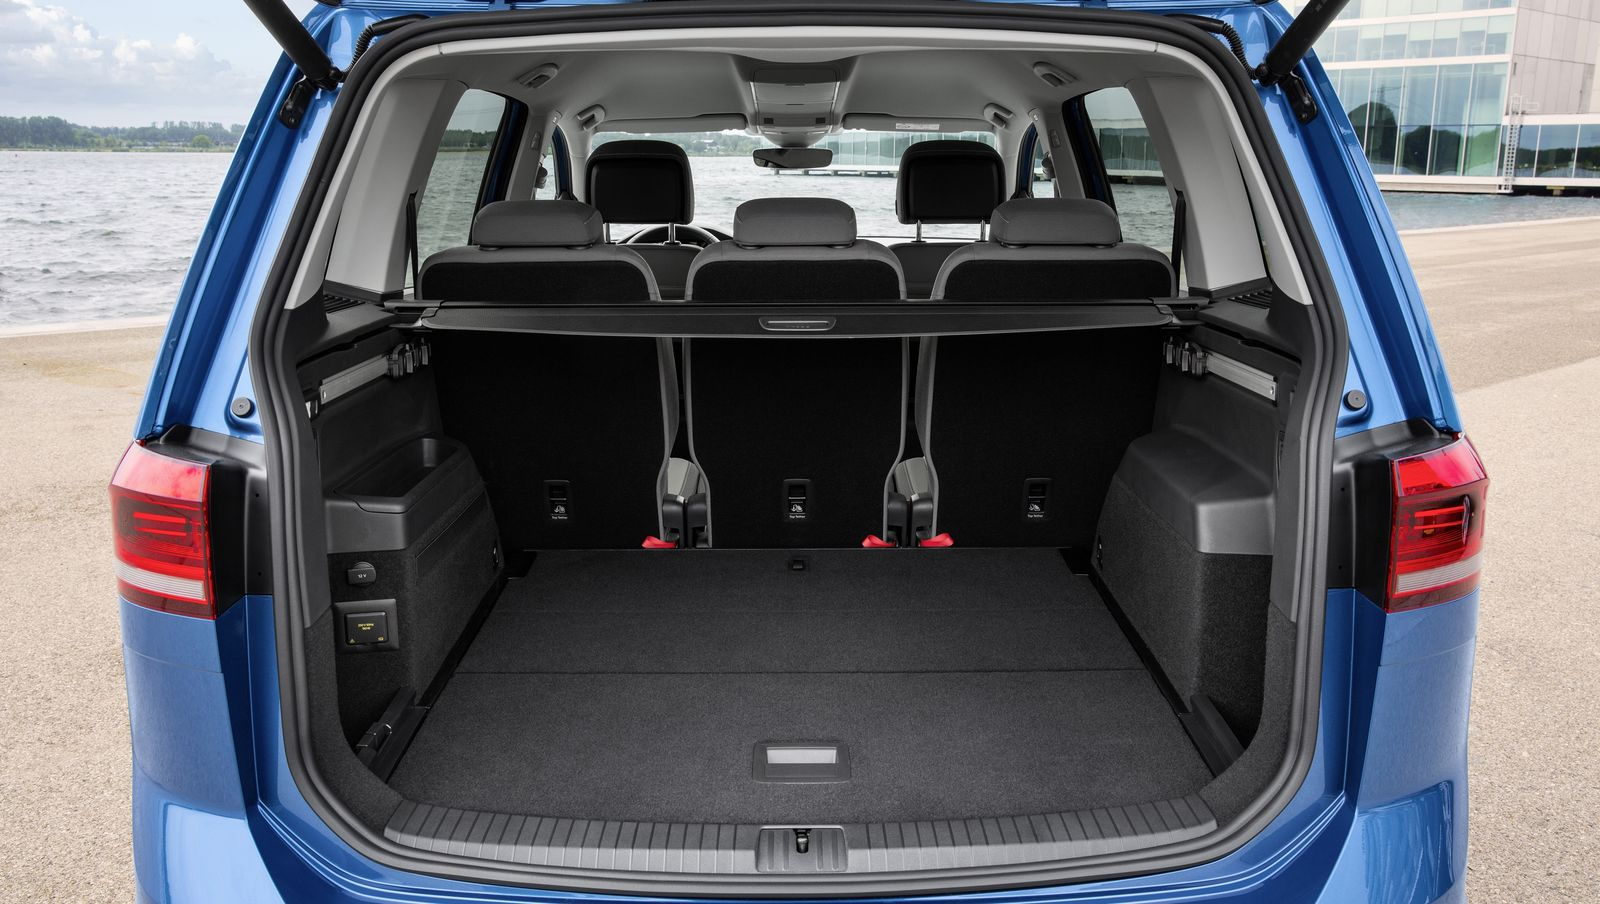 Volkswagen Touran Sizes And Dimensions Guide Carwow